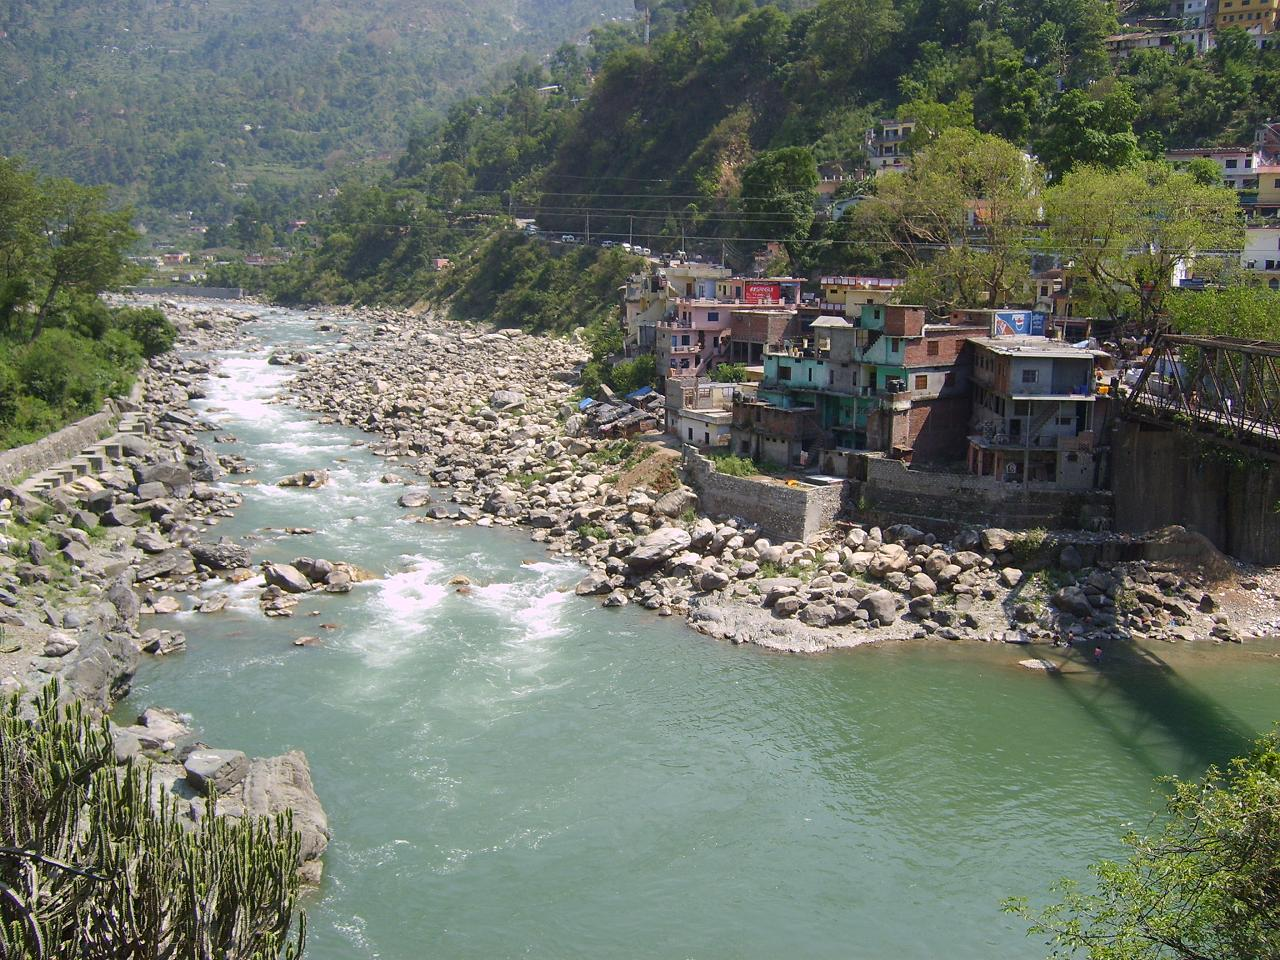 Rudraprayag India  city photos gallery : Rudraprayag – photo gallery, pictures of India